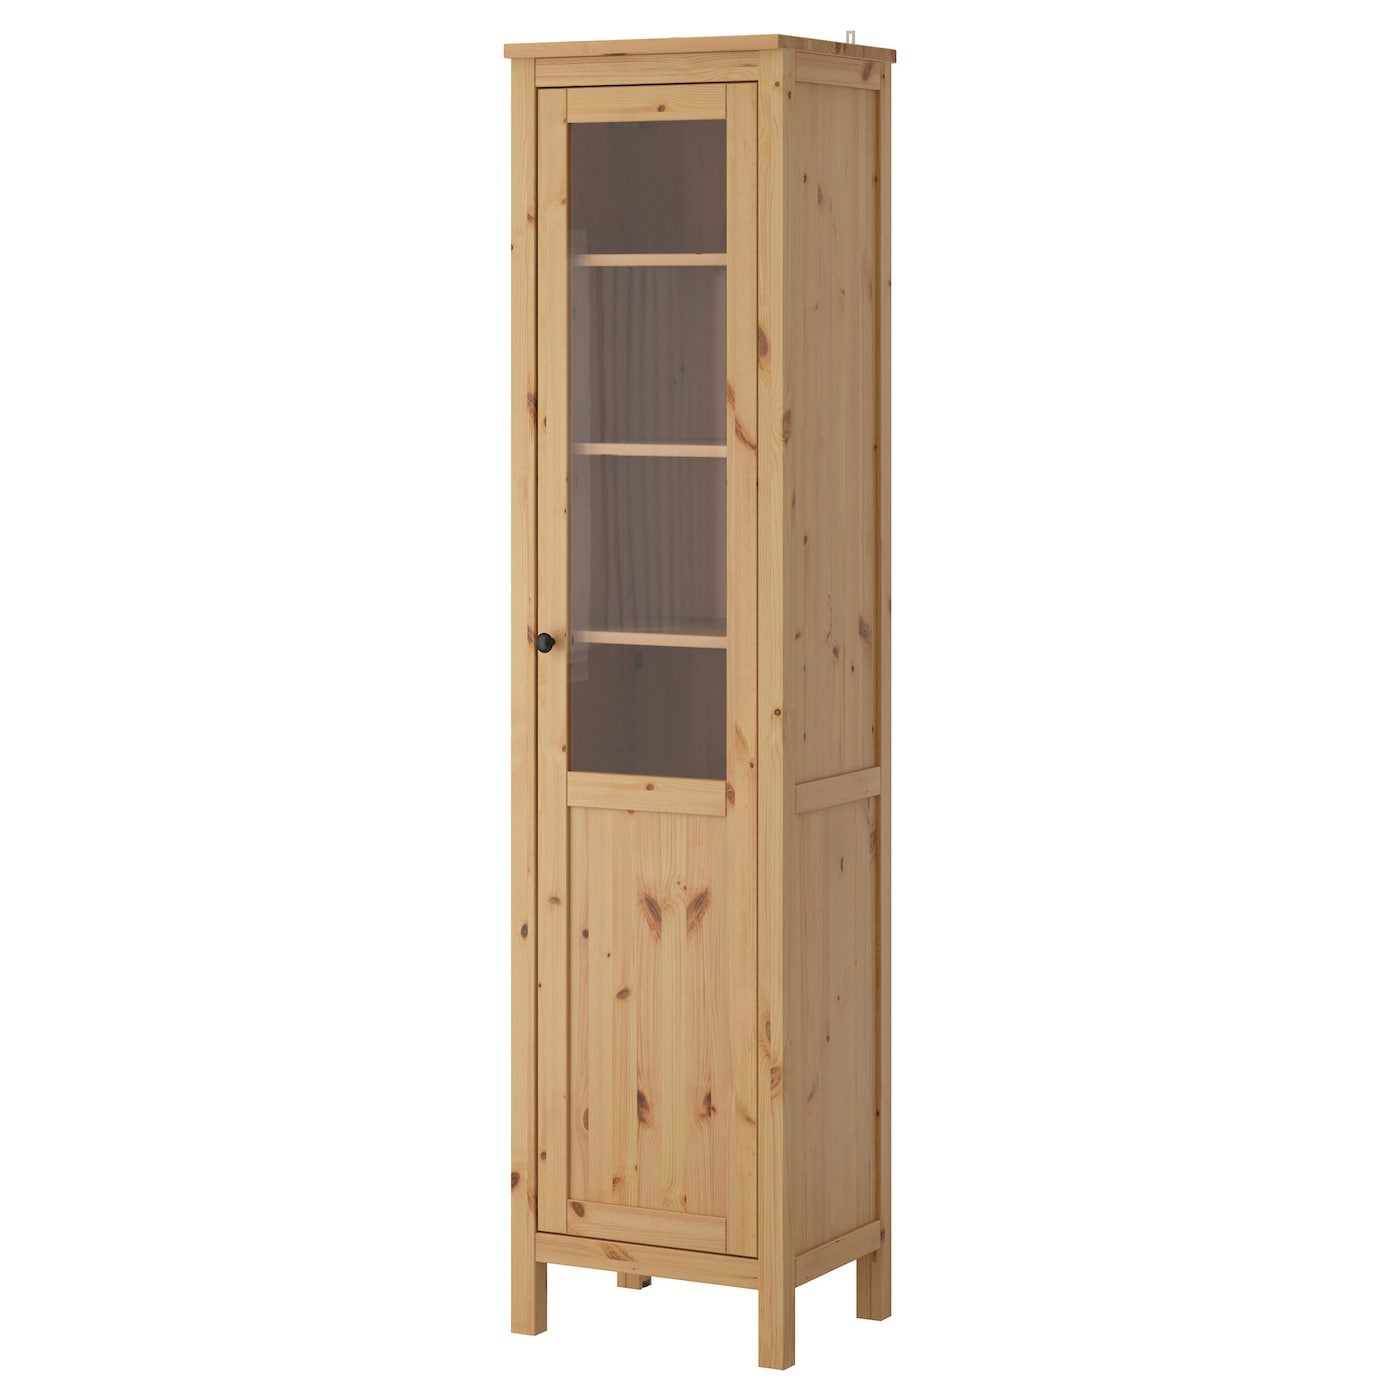 hemnes cabinet with panel glass door light brown 49x197 cm ikea. Black Bedroom Furniture Sets. Home Design Ideas